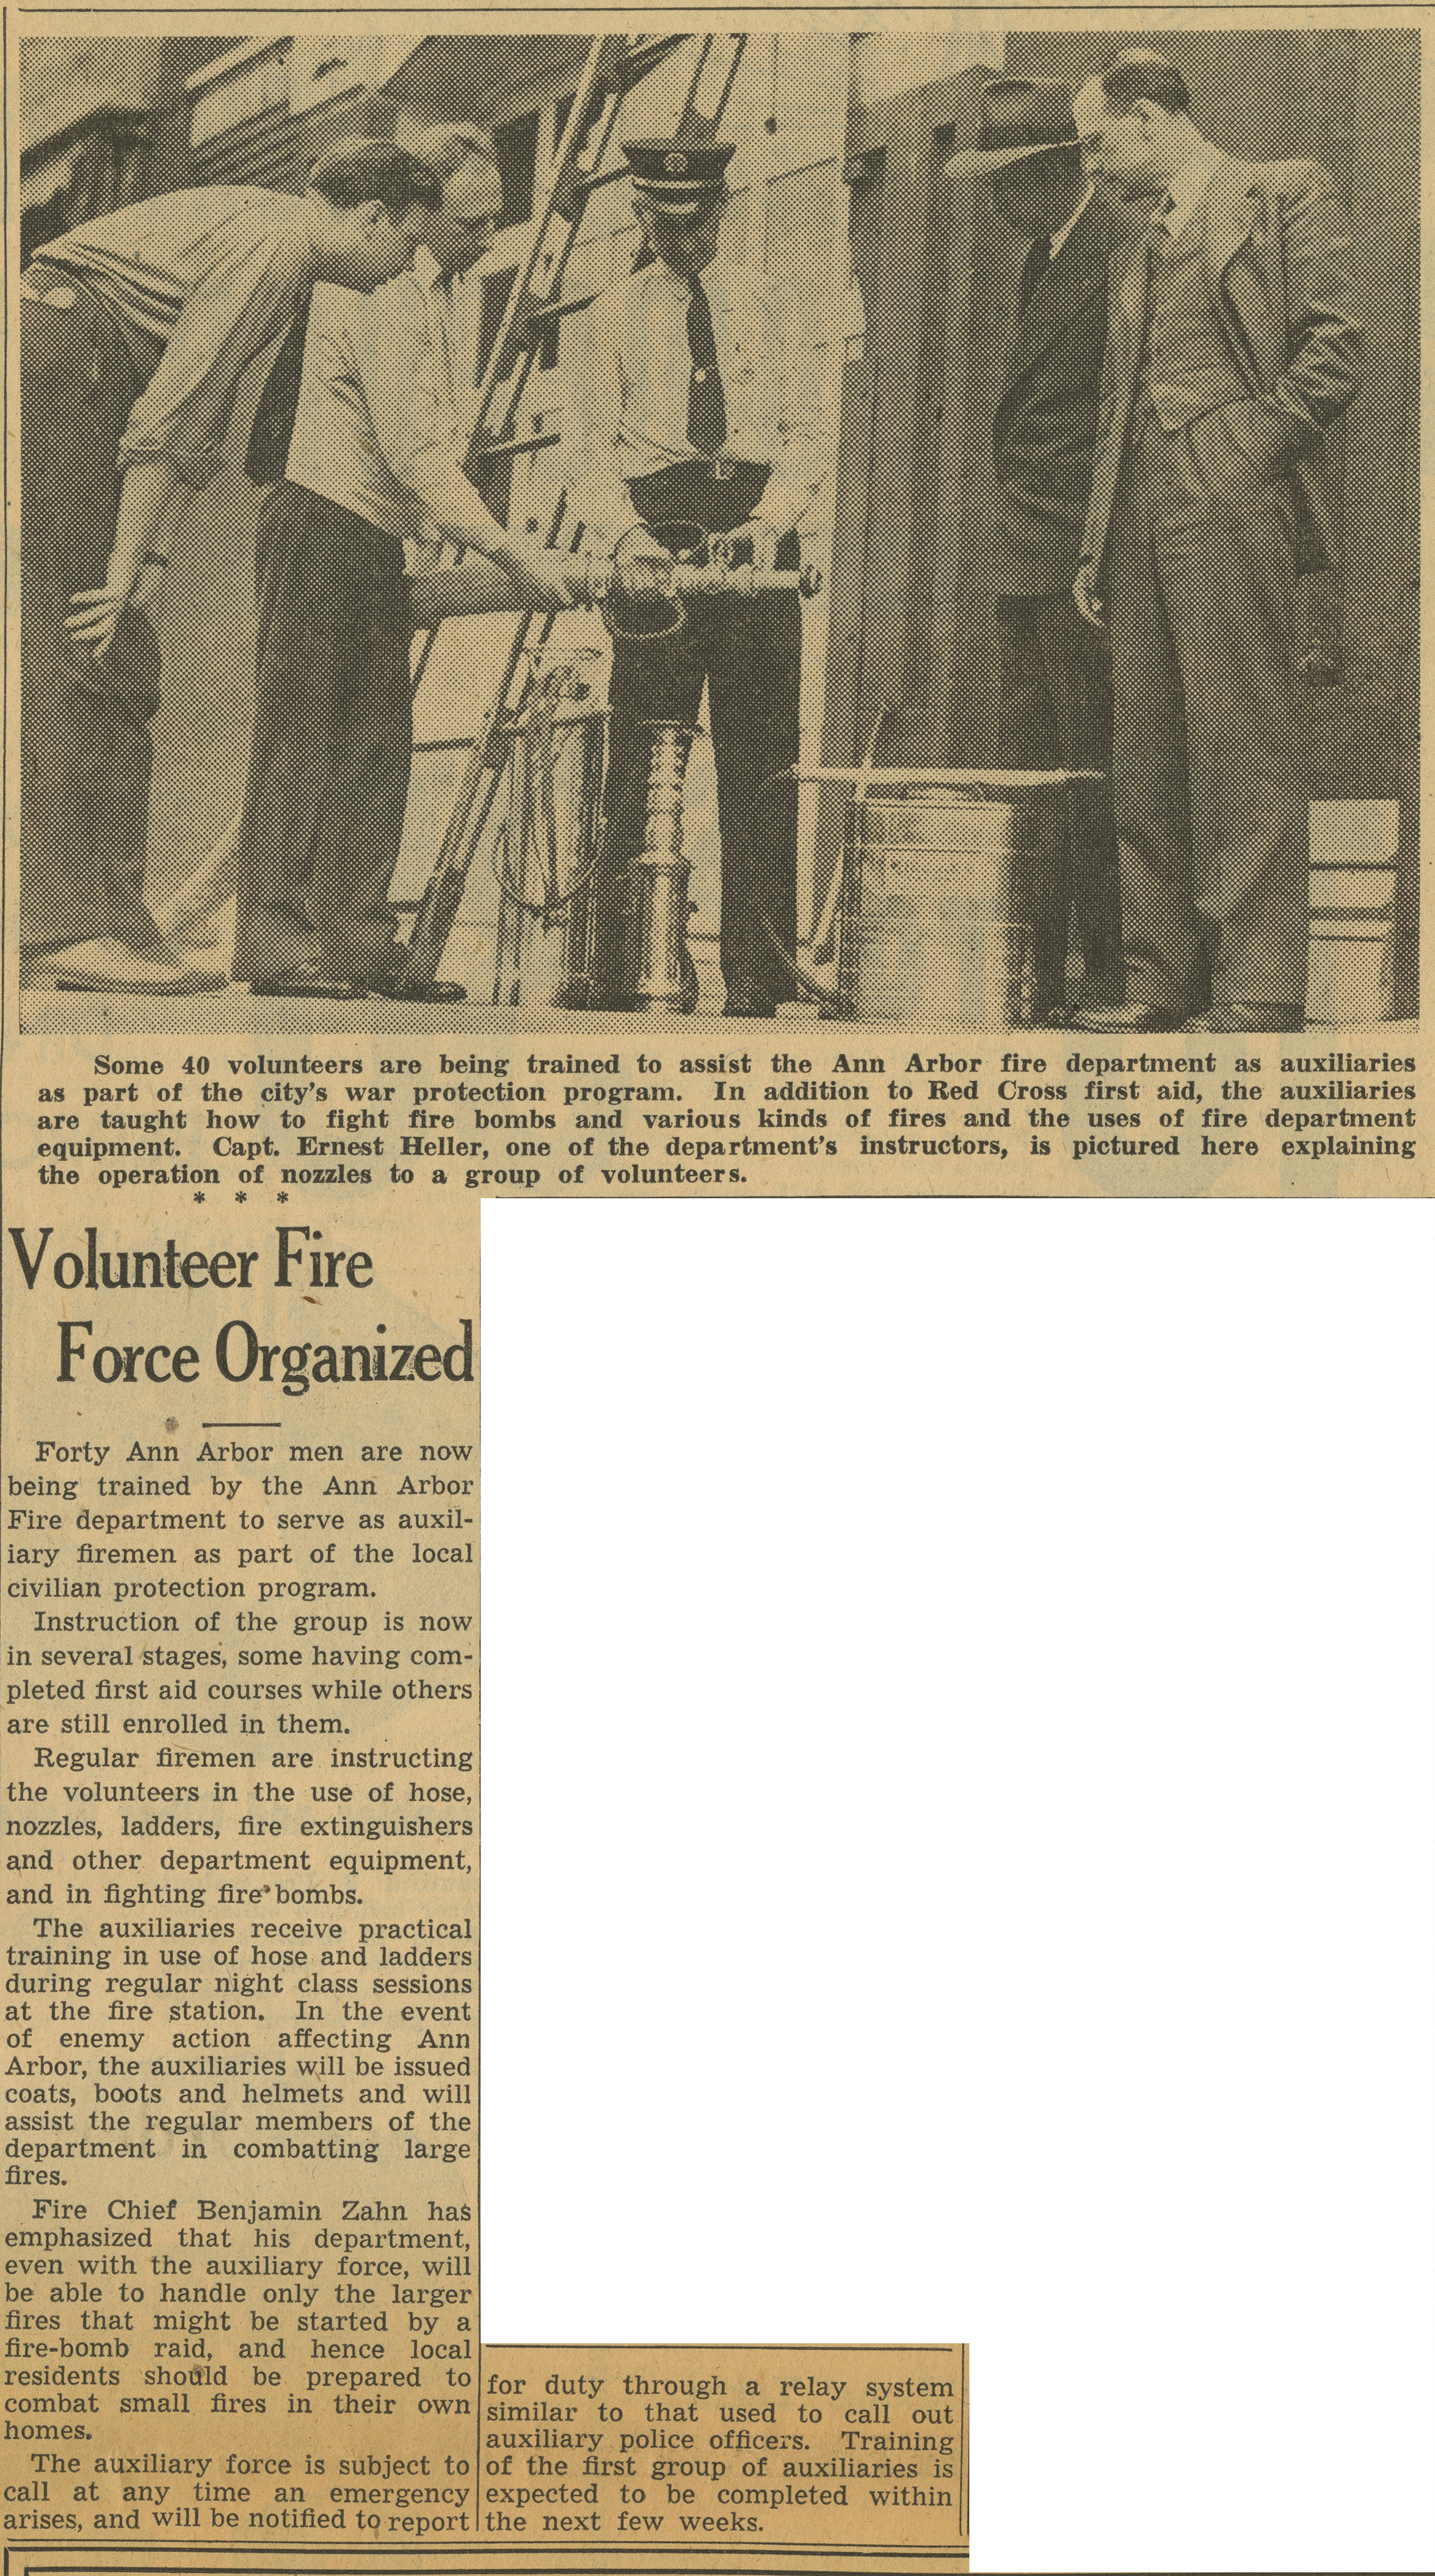 Volunteer Fire Force Organized image